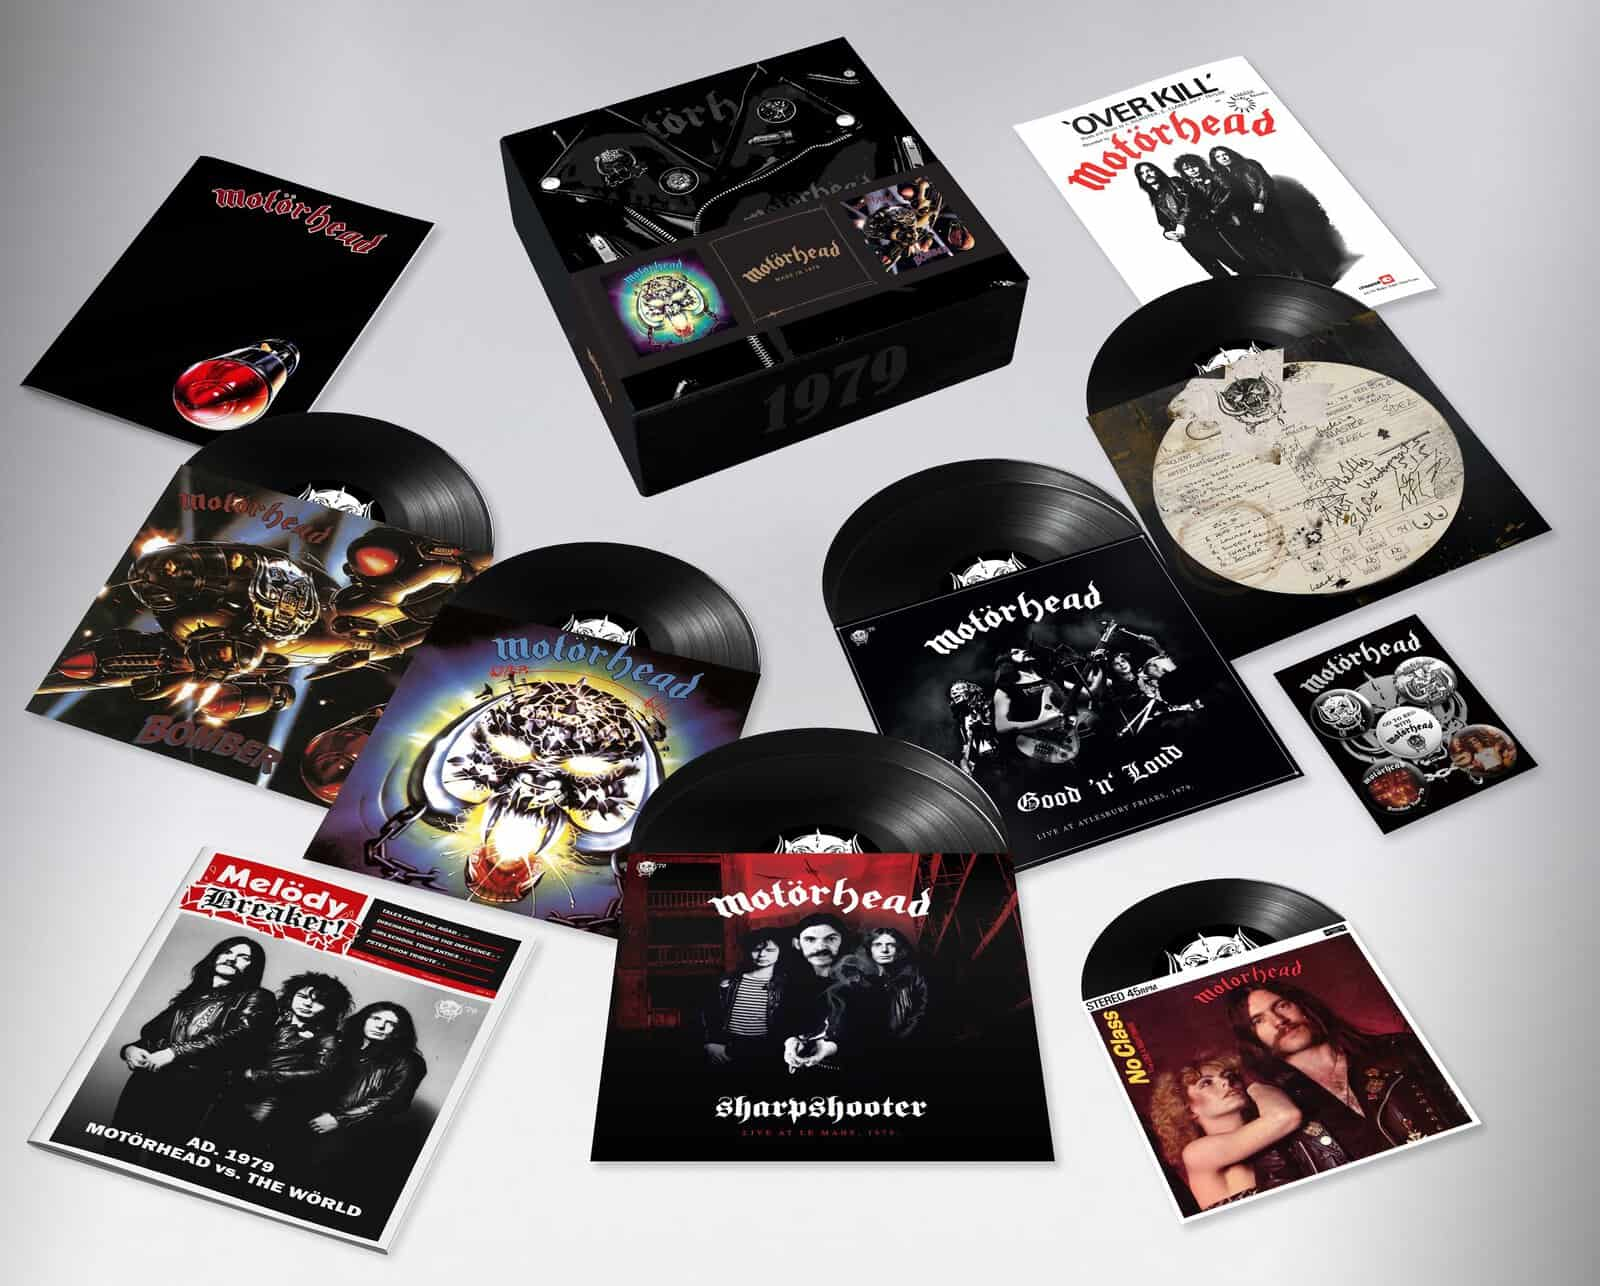 Motorhead '79 Box Set